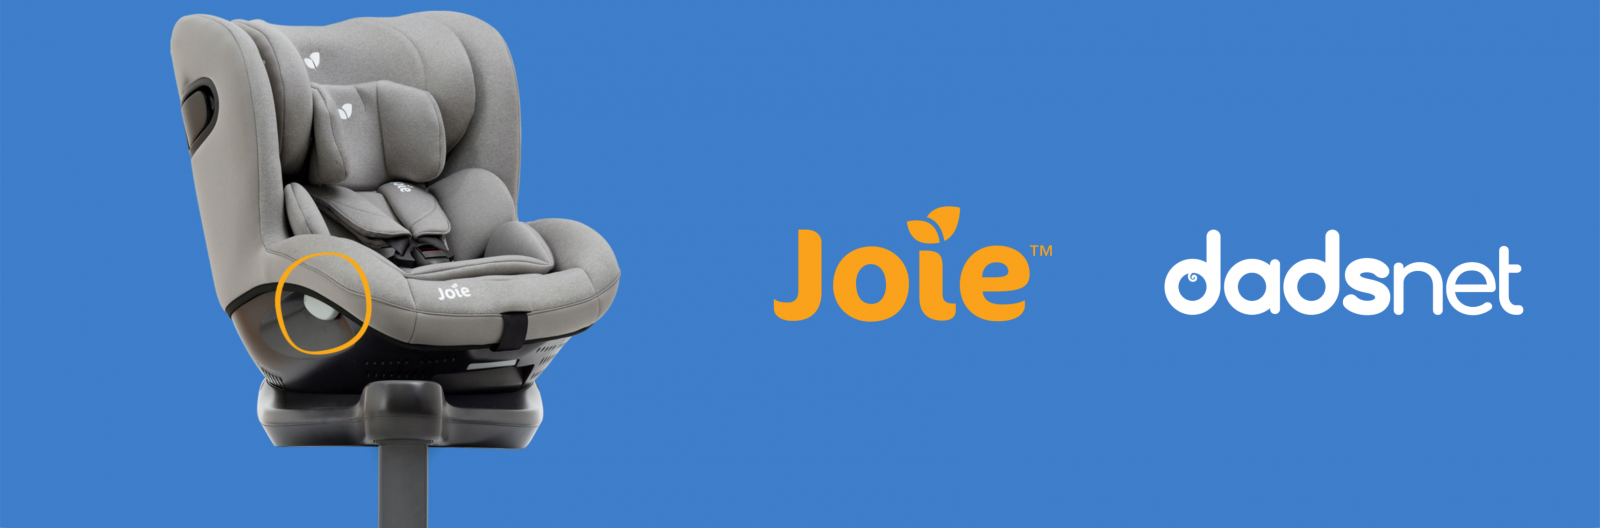 Parent-Friendly Songs to Get Your Child Grooving in Their Car Seat, Joie Banner Stroller 2 1600x528%, daily-dad%